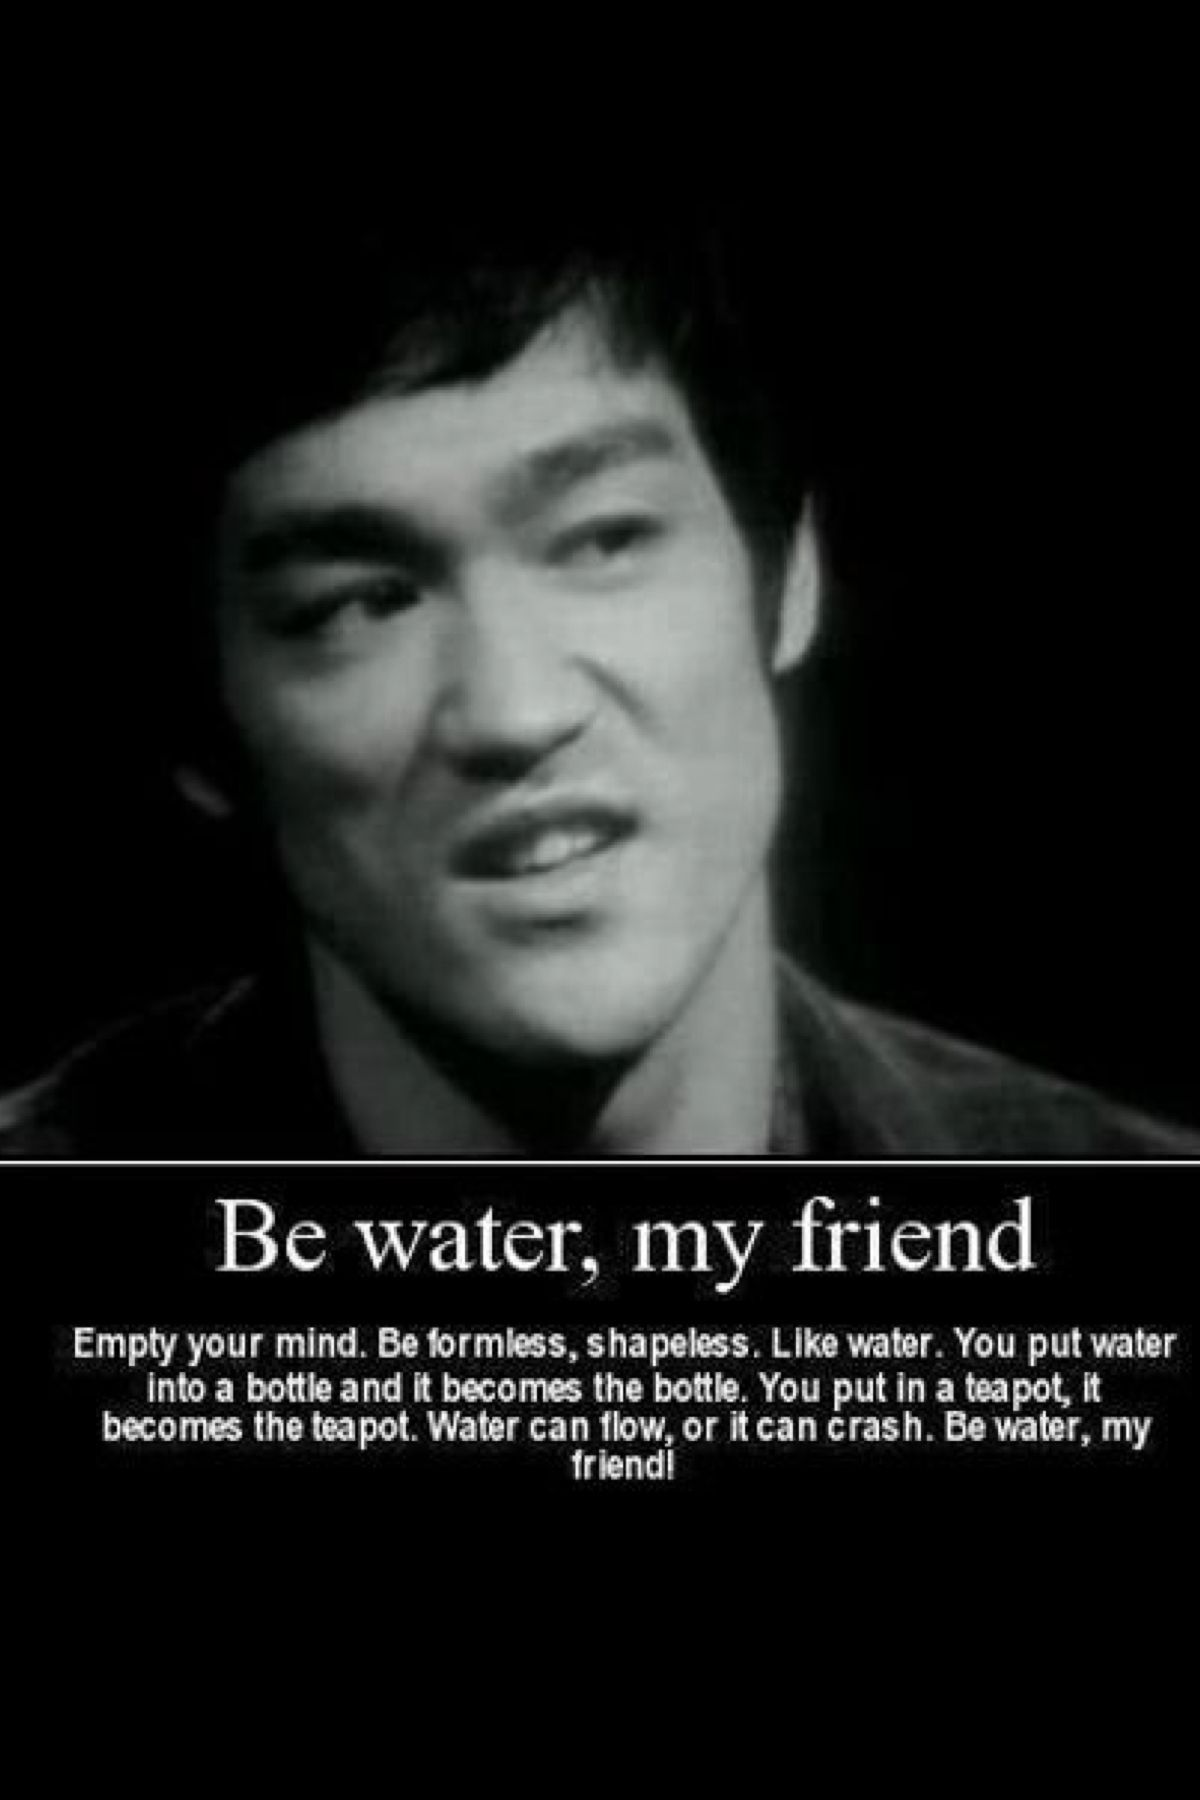 Be Like Water Bruce Lee S Quotes Poster 12x18 Inch Be Flexible As Water By Clicking Here Quotes Brucel Bruce Lee Quotes Inspirational Quotes Life Quotes